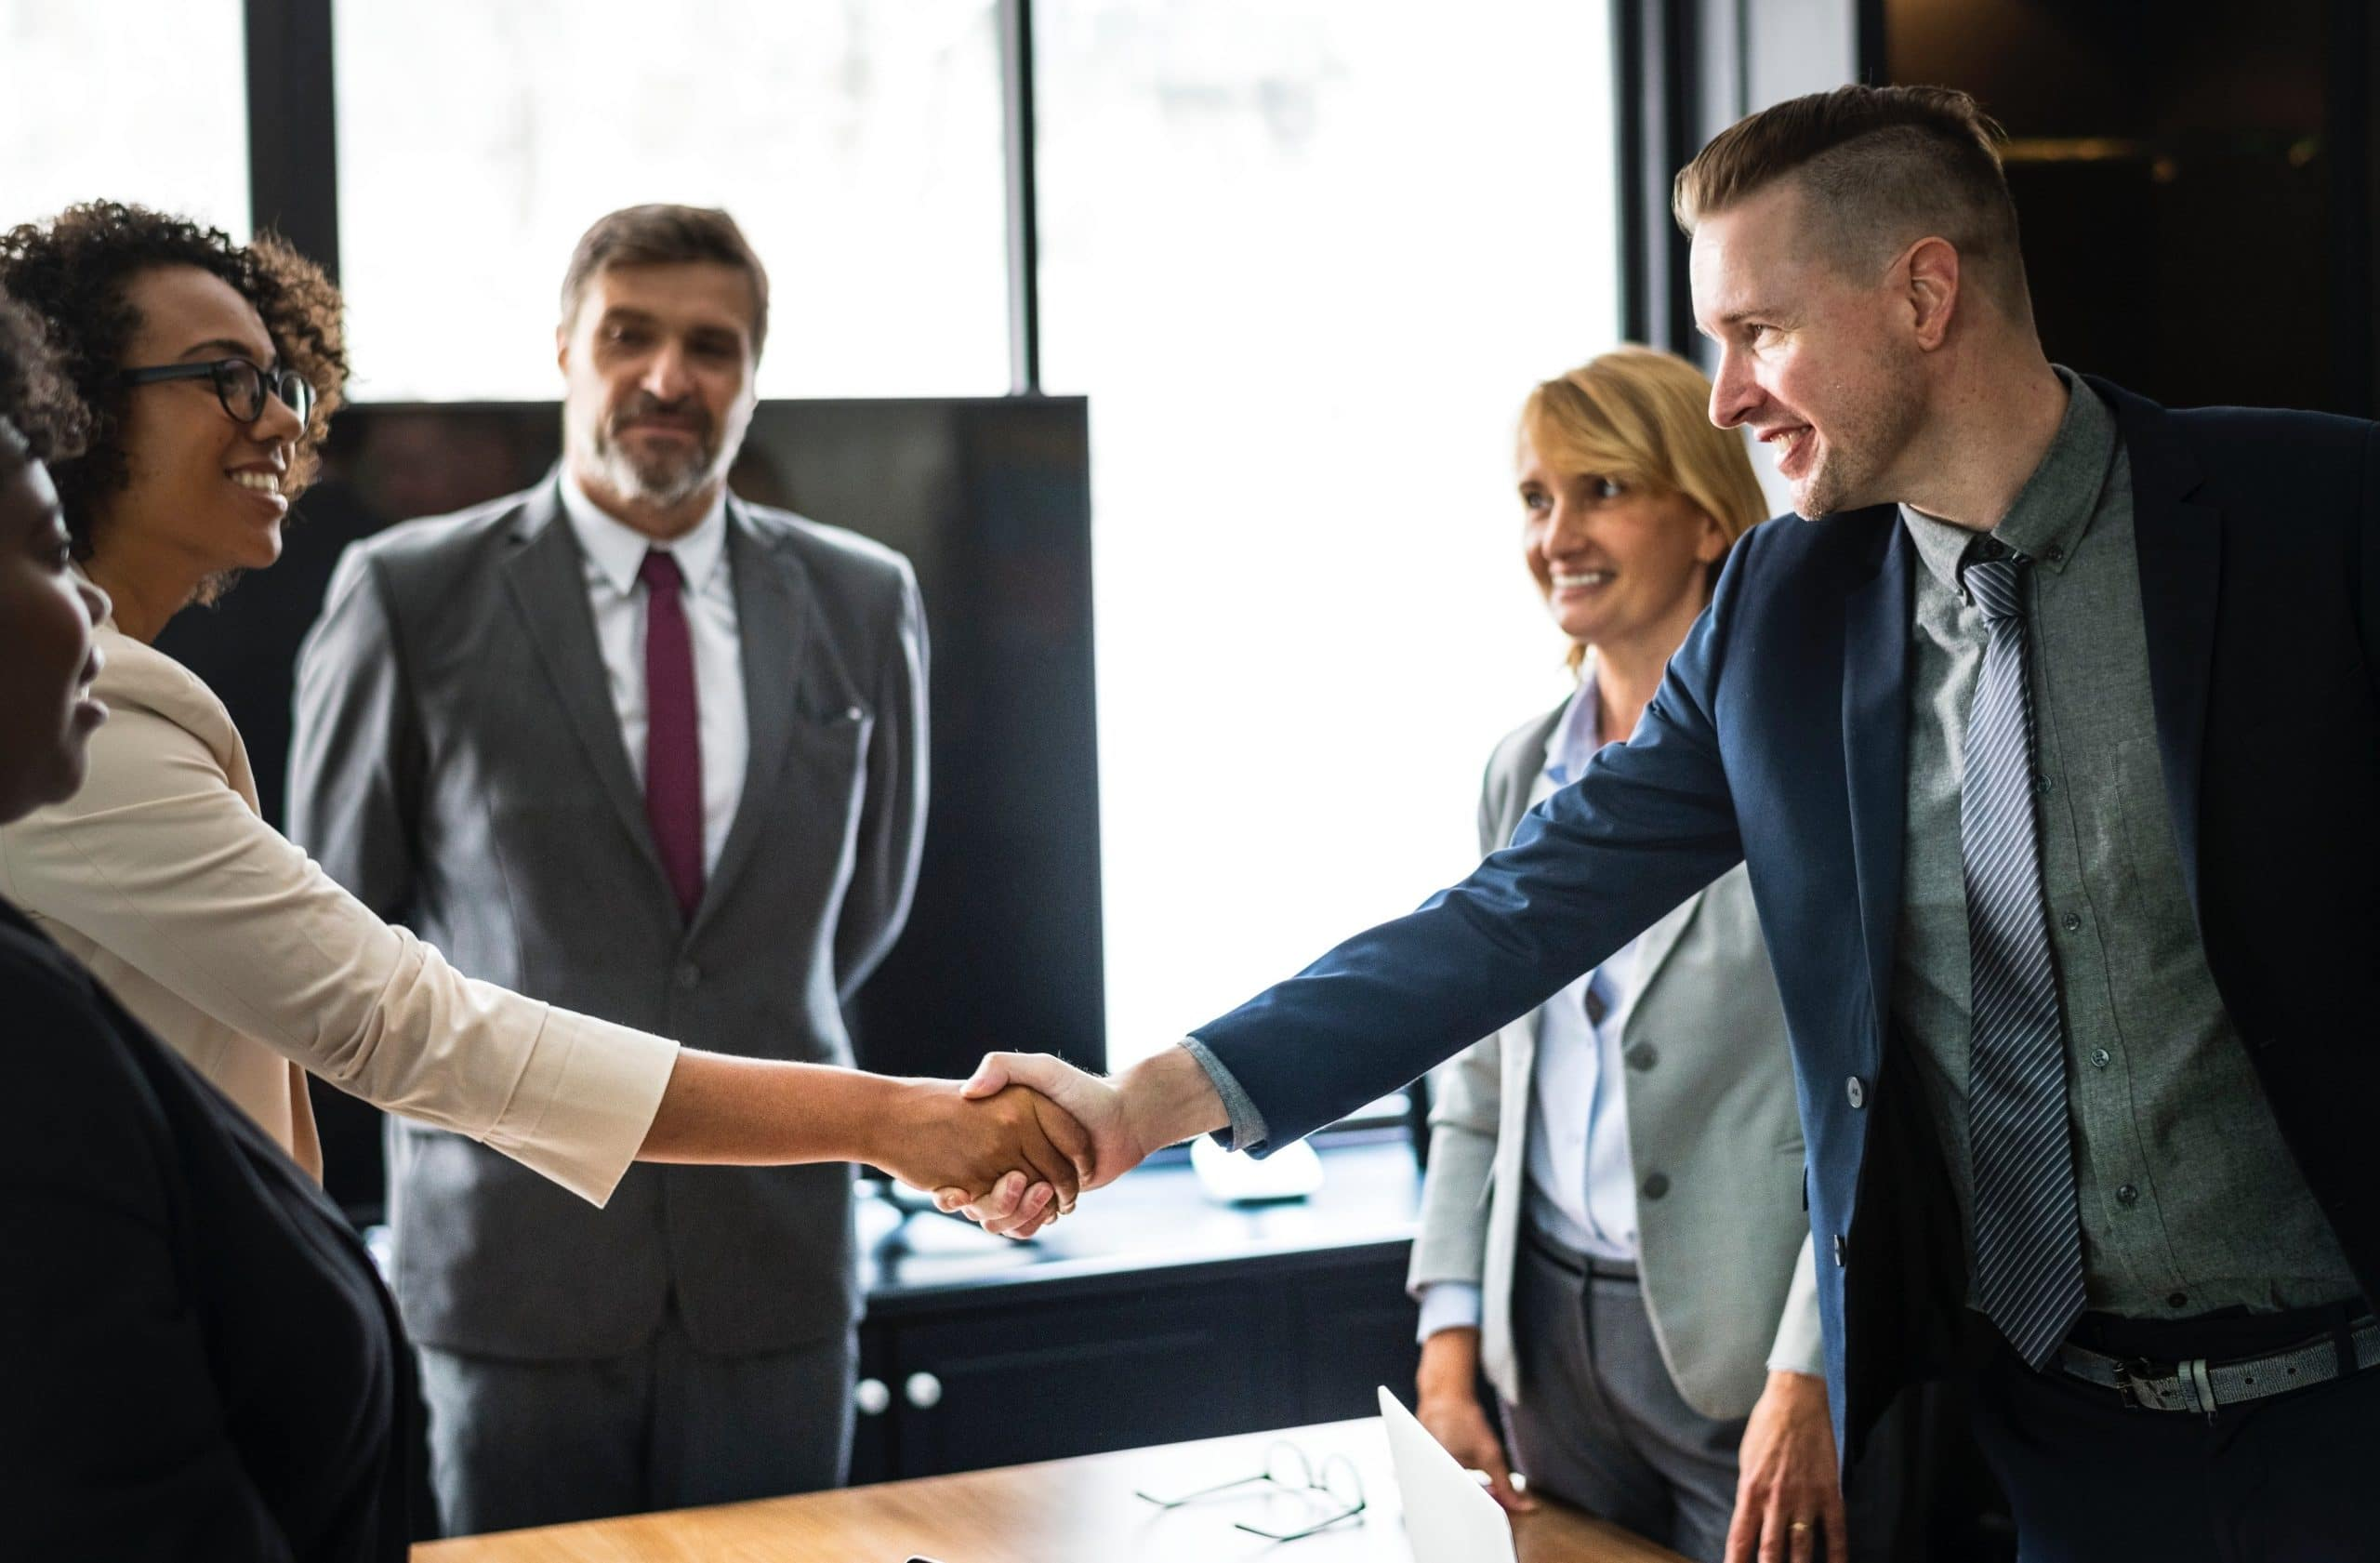 5 Tips on How to Choose a Business Advisor - Criteria For Success